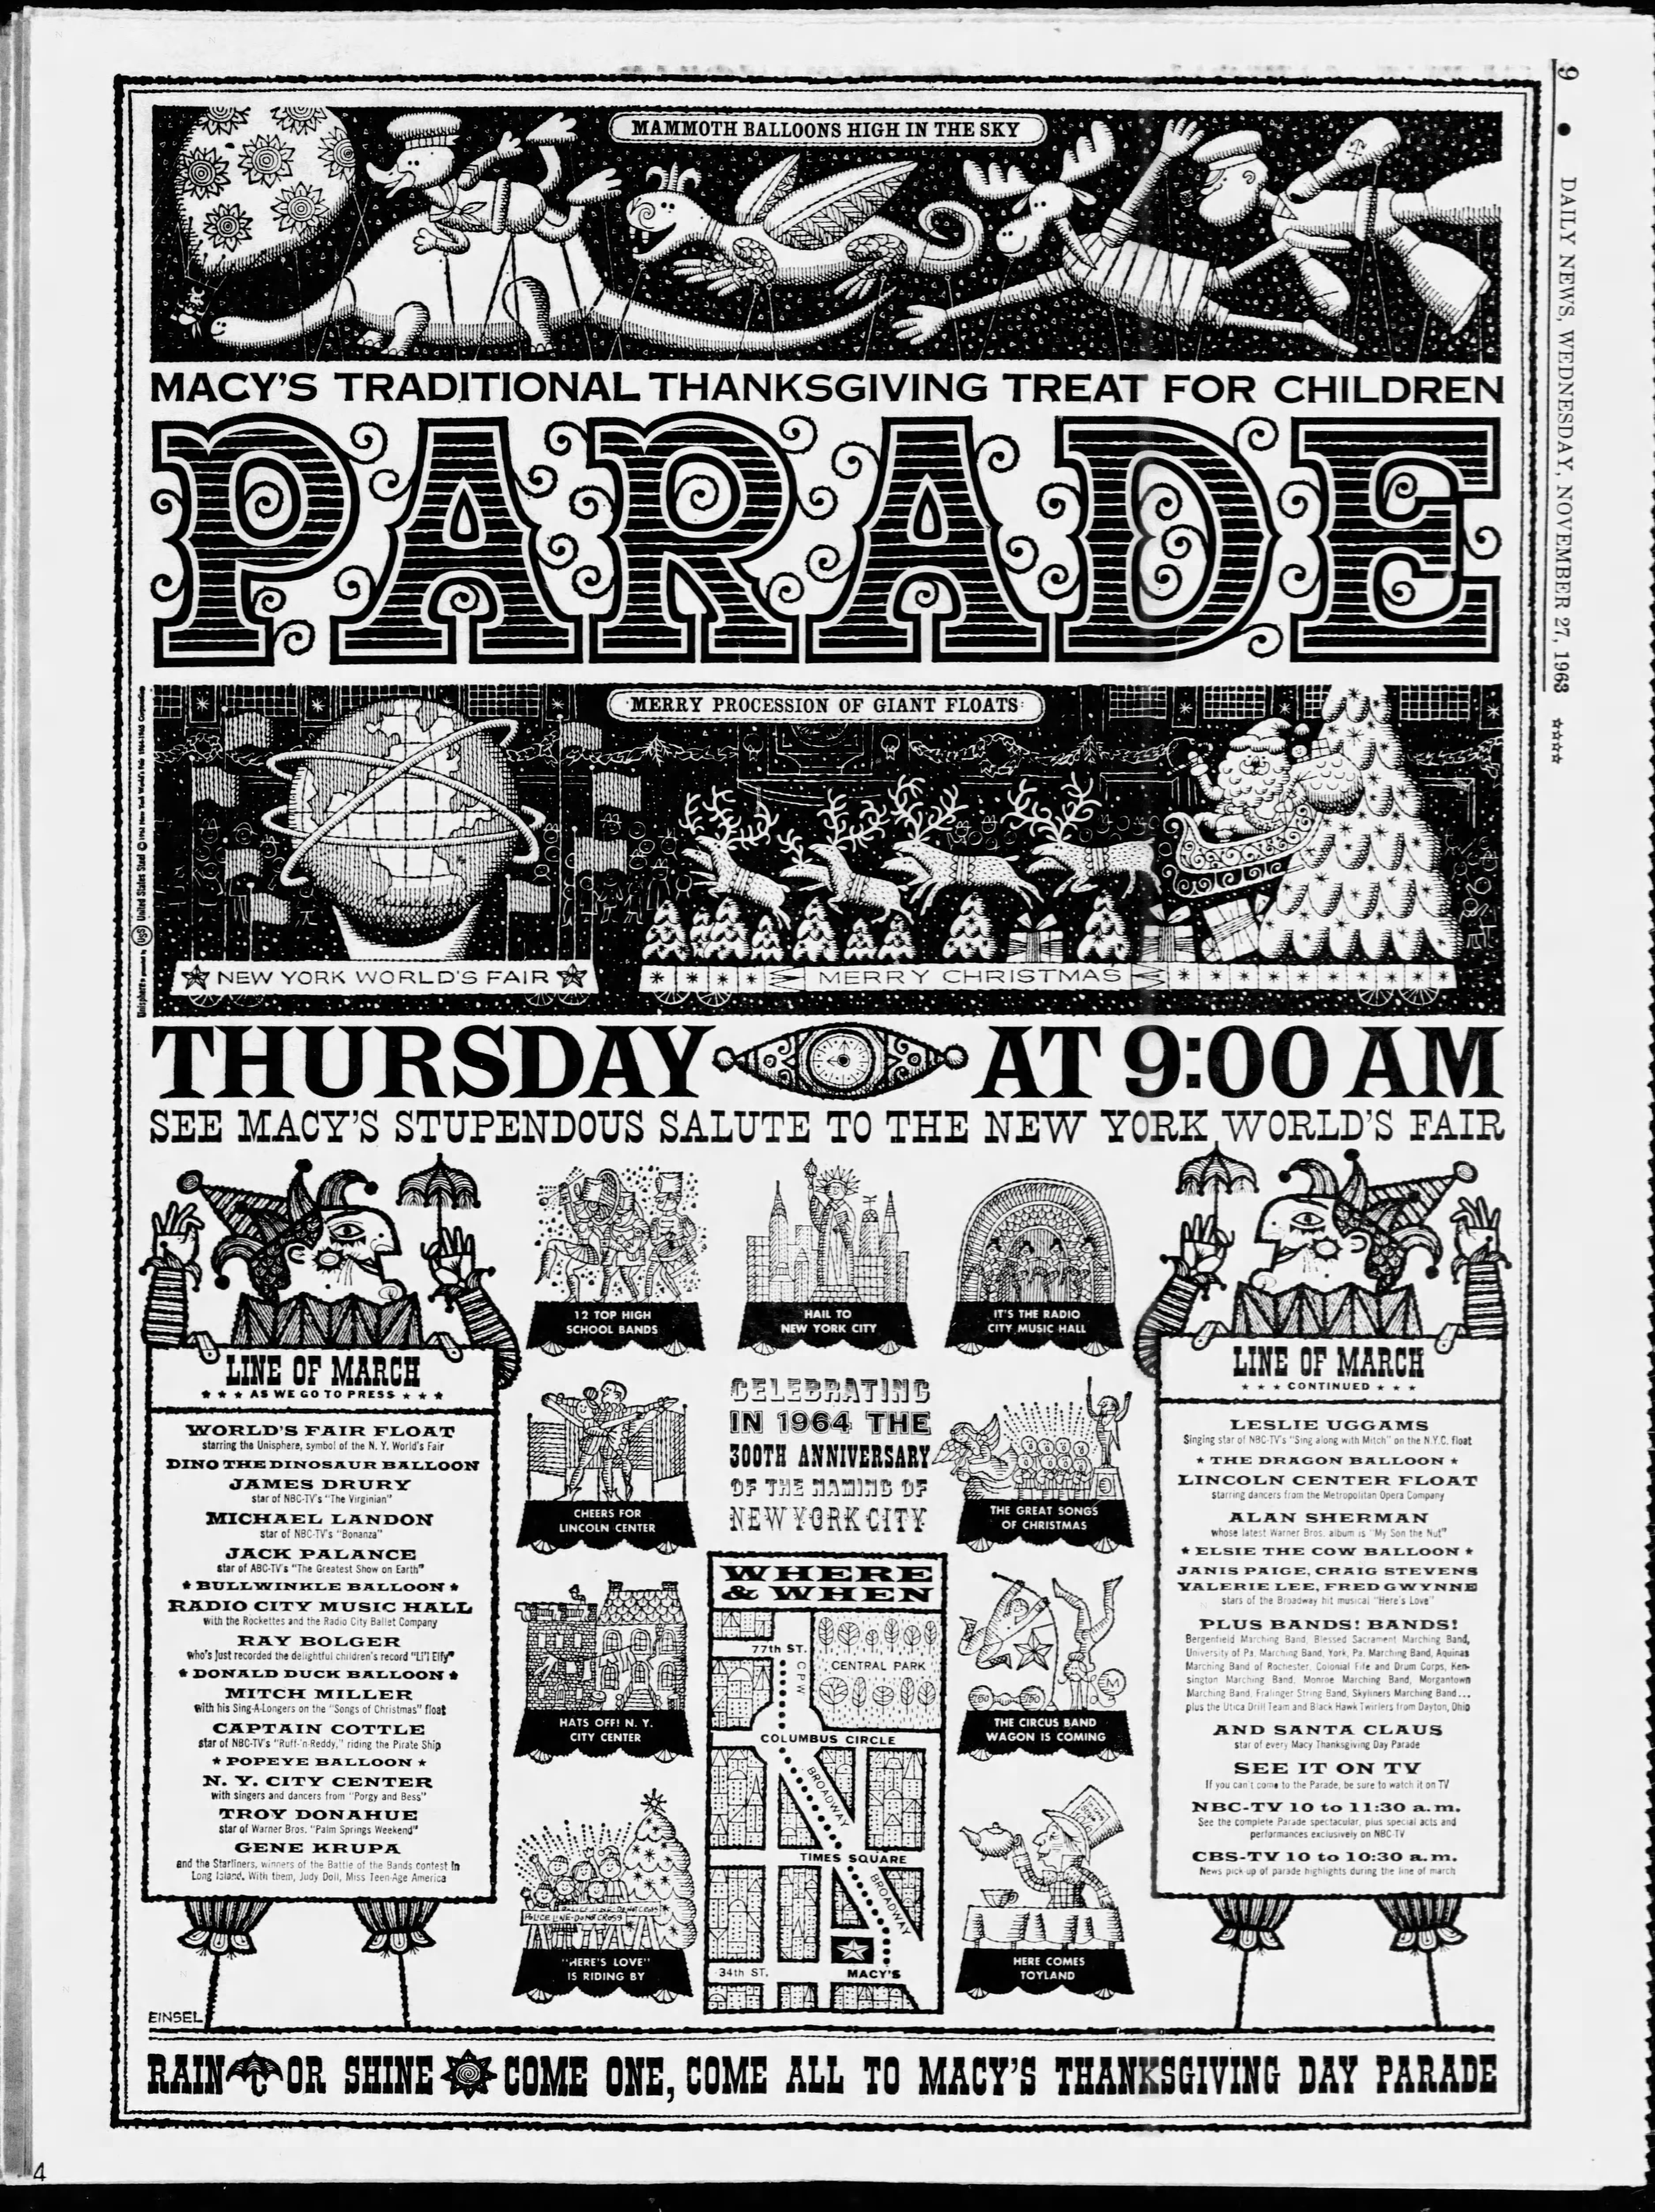 The 37th Annual Macy's Thanksgiving Day Parade